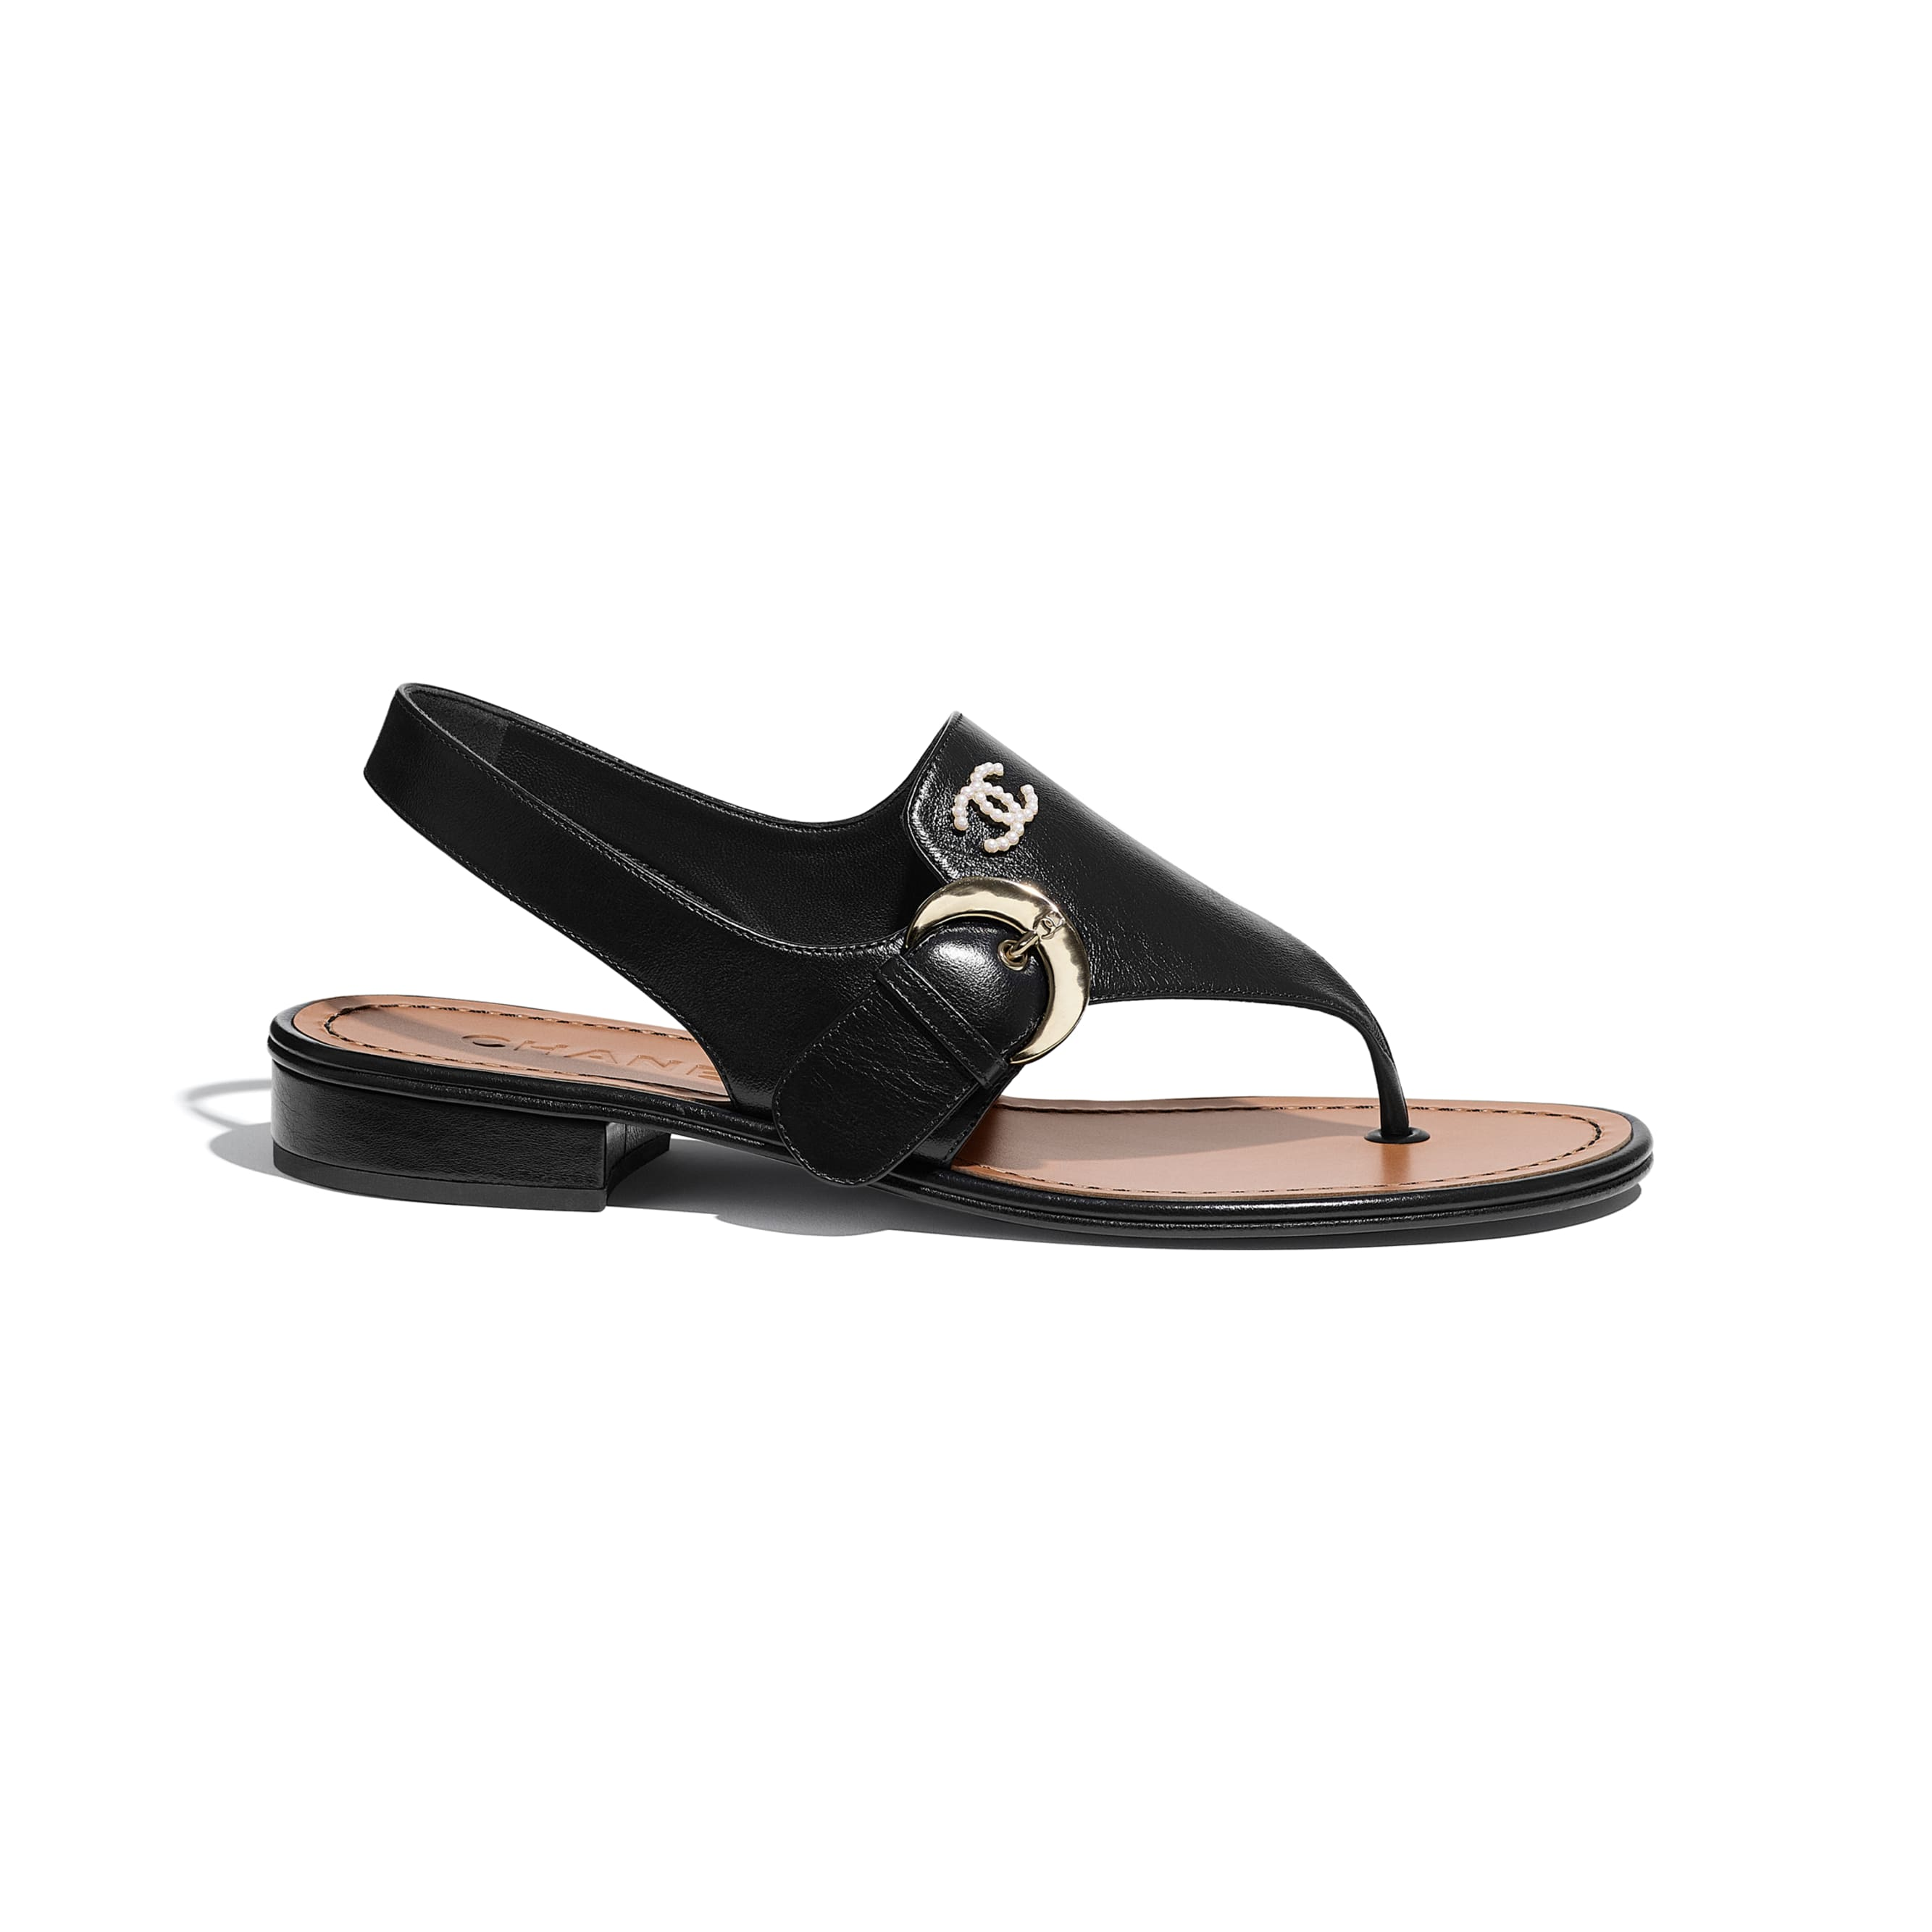 Sandals - Black - Calfskin - CHANEL - Default view - see standard sized version